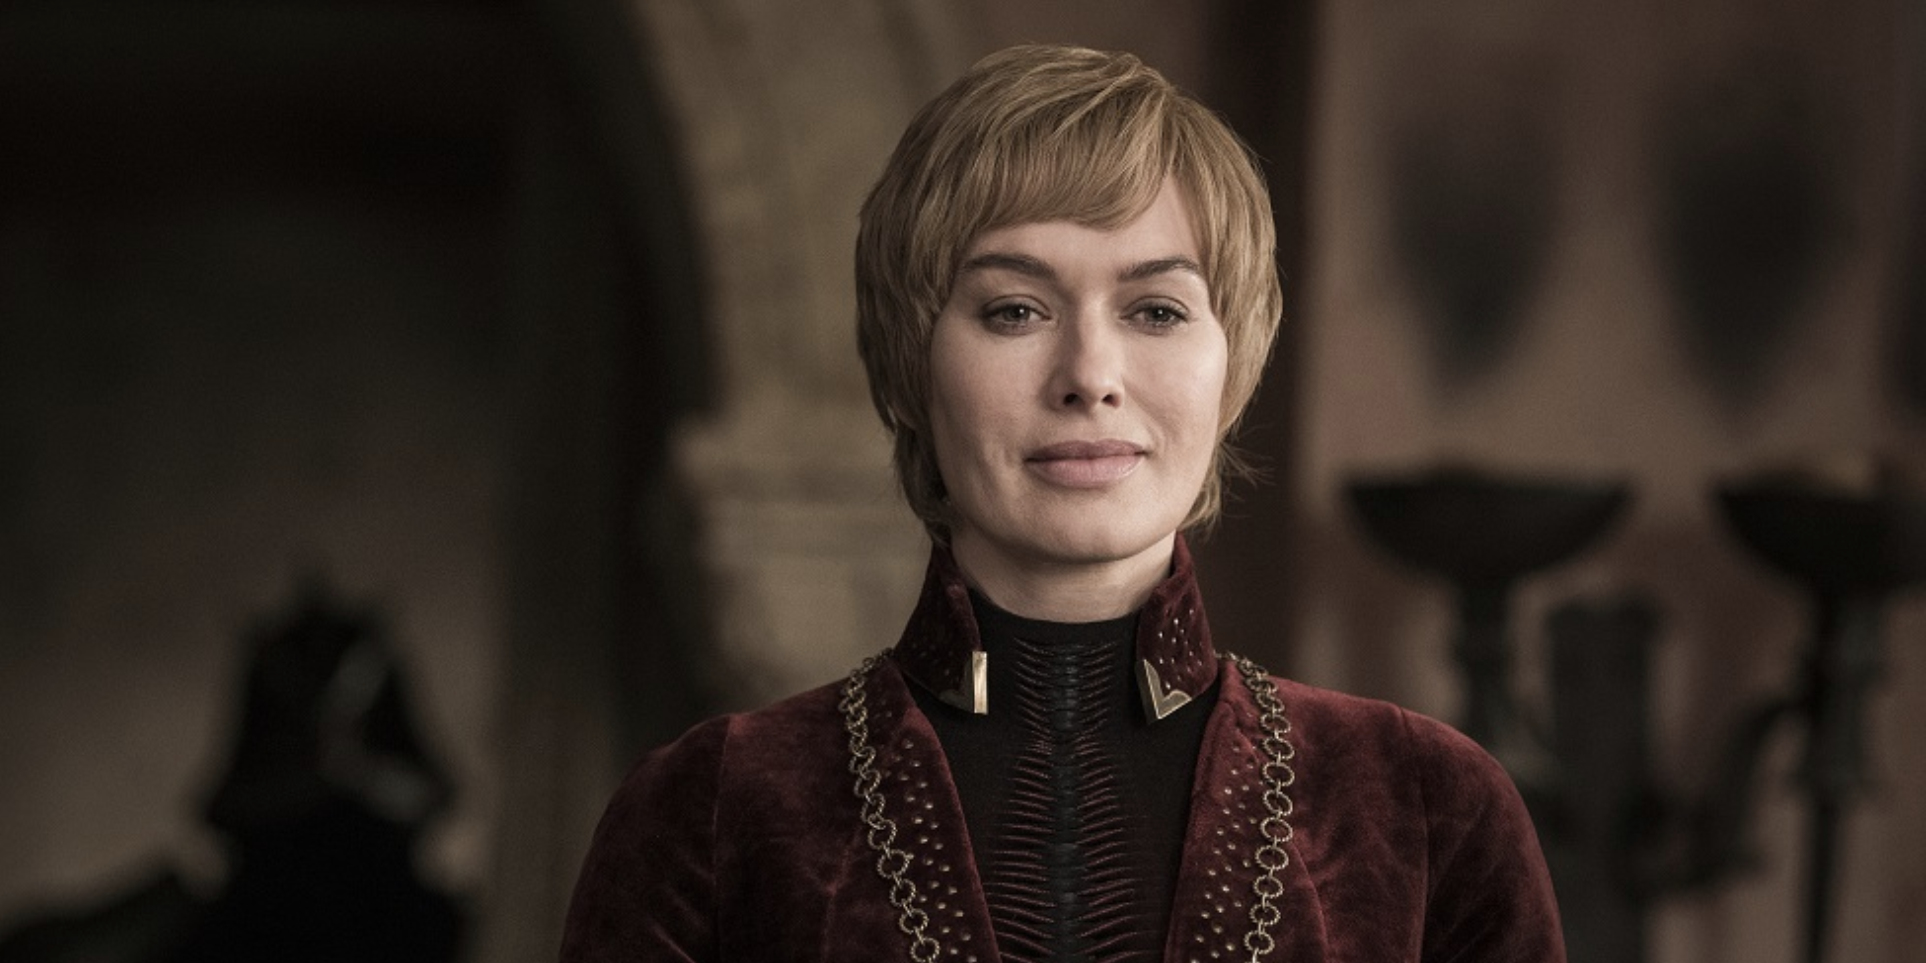 Game of Thrones season 8, episode 5: Cersei Lannister